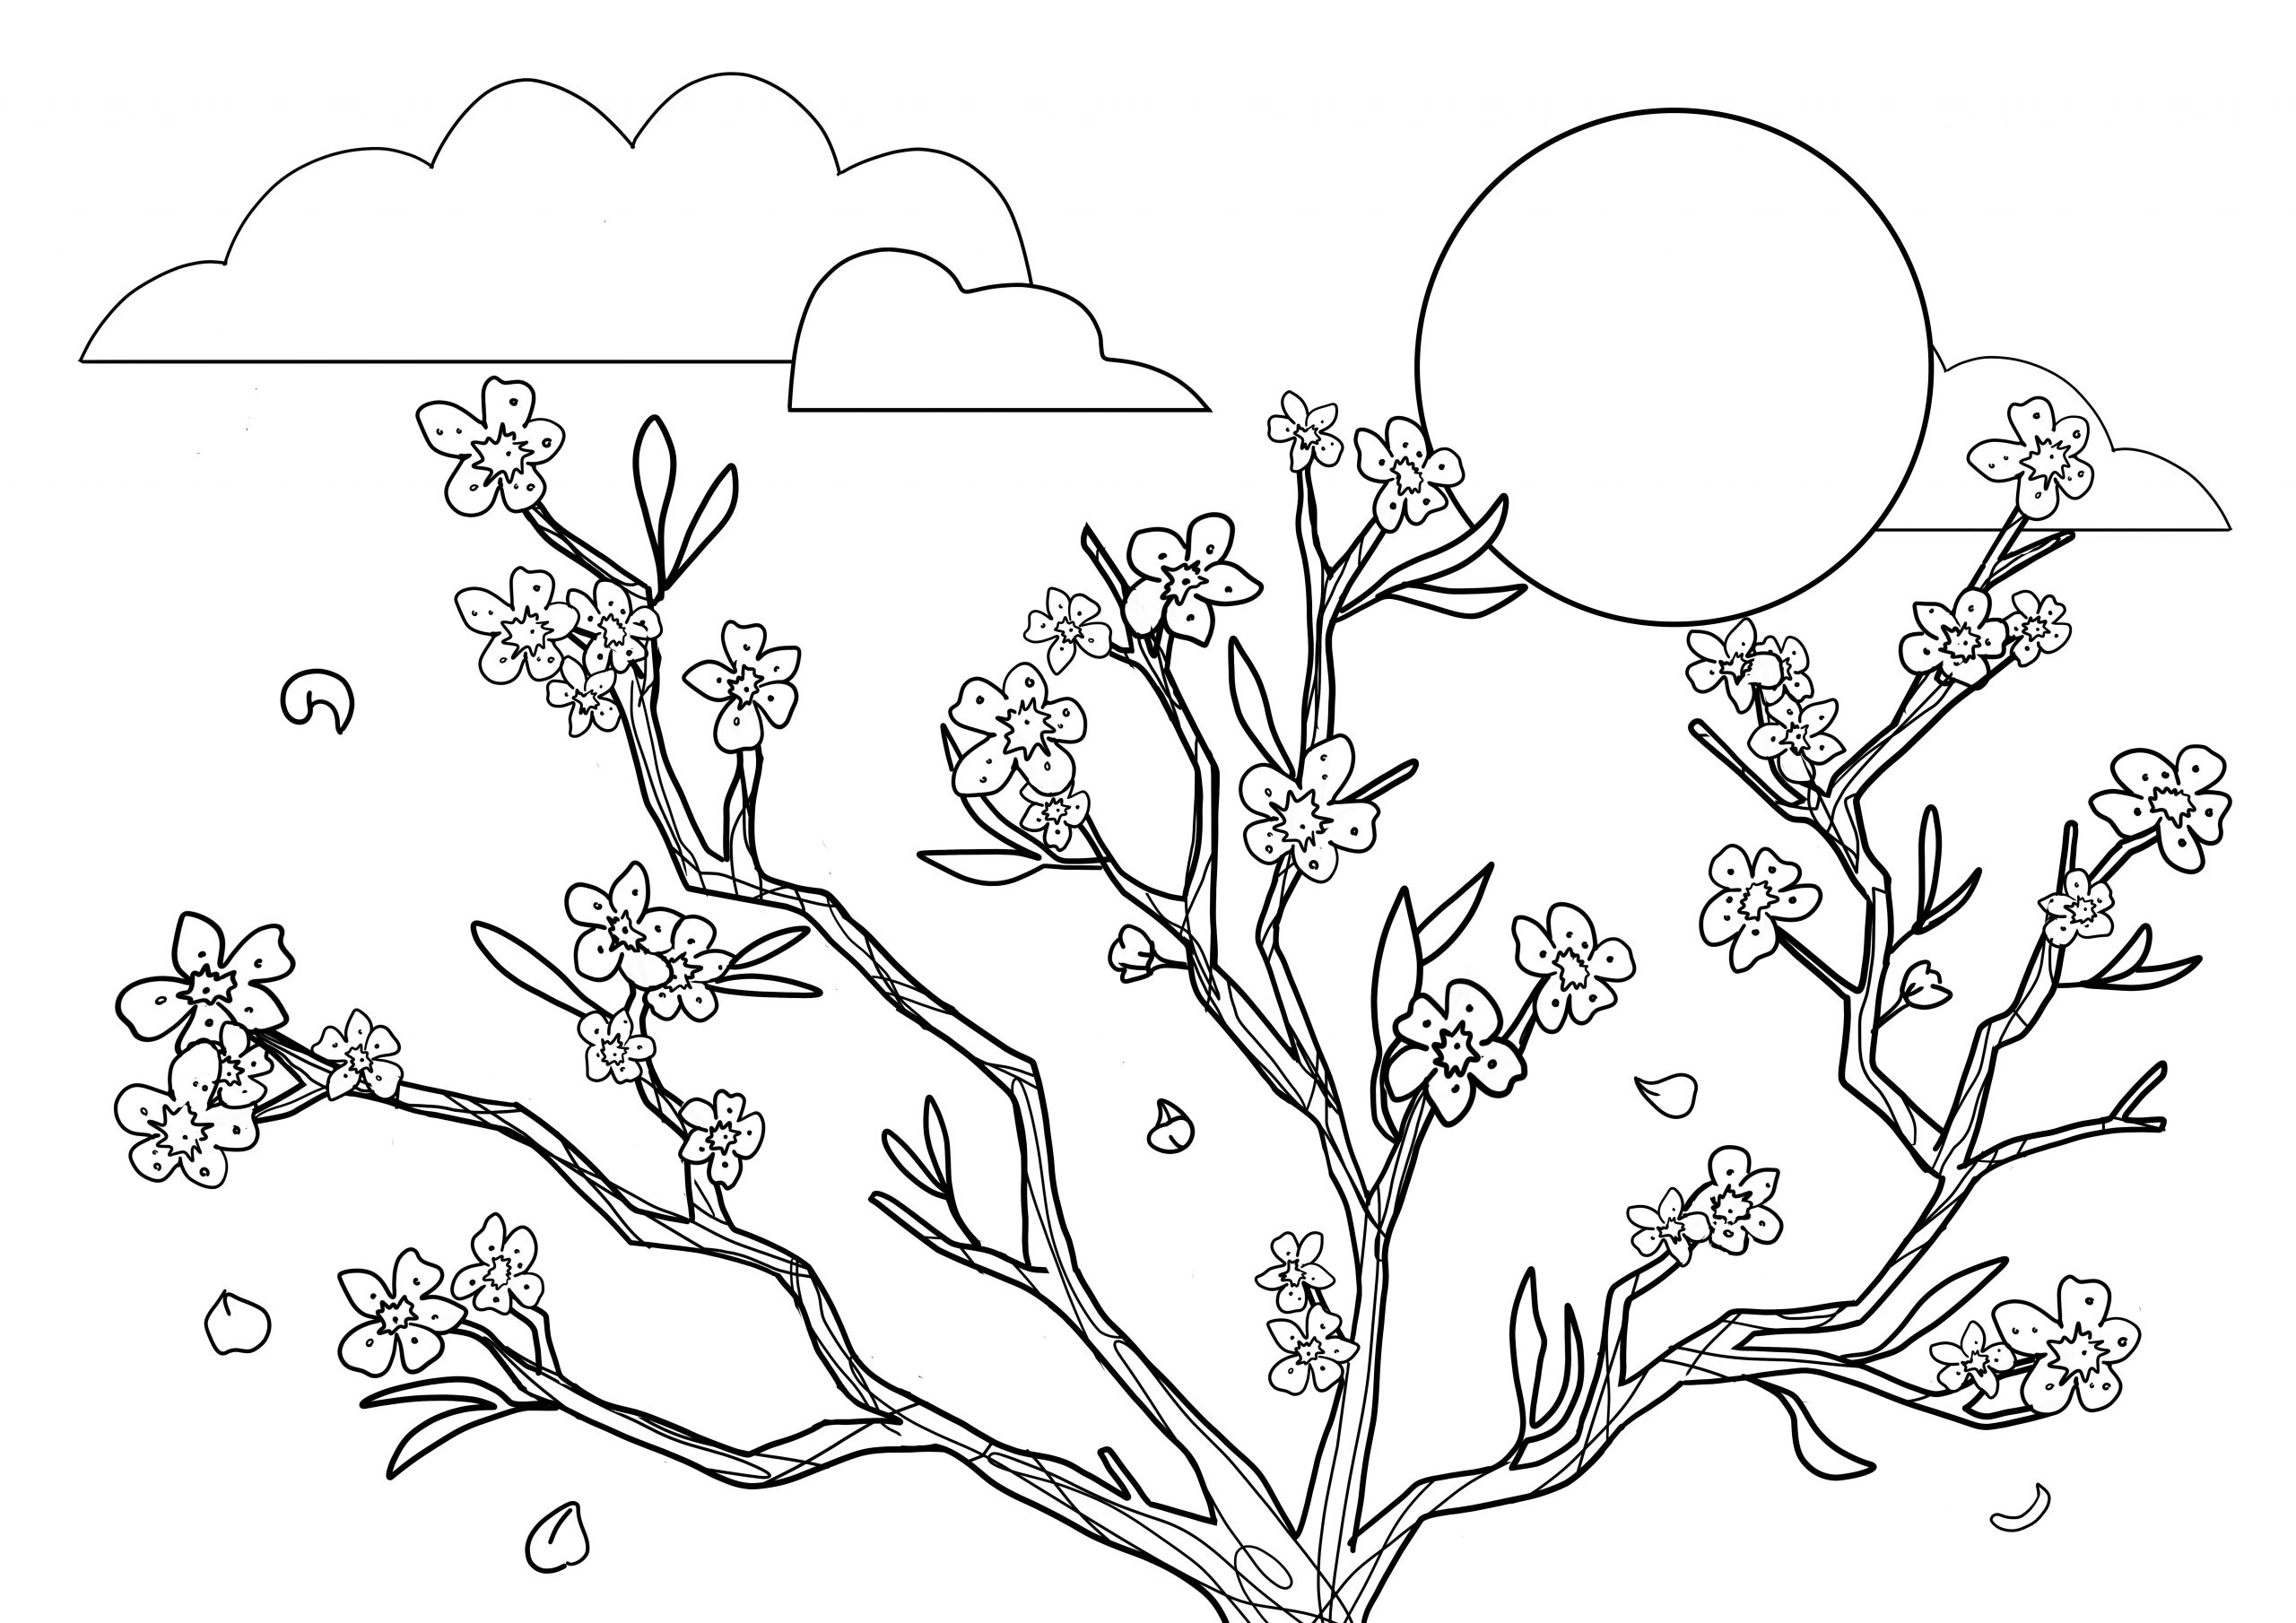 cherry blossom coloring pages free vintage plum blossom image vintage free and drawings coloring pages cherry blossom